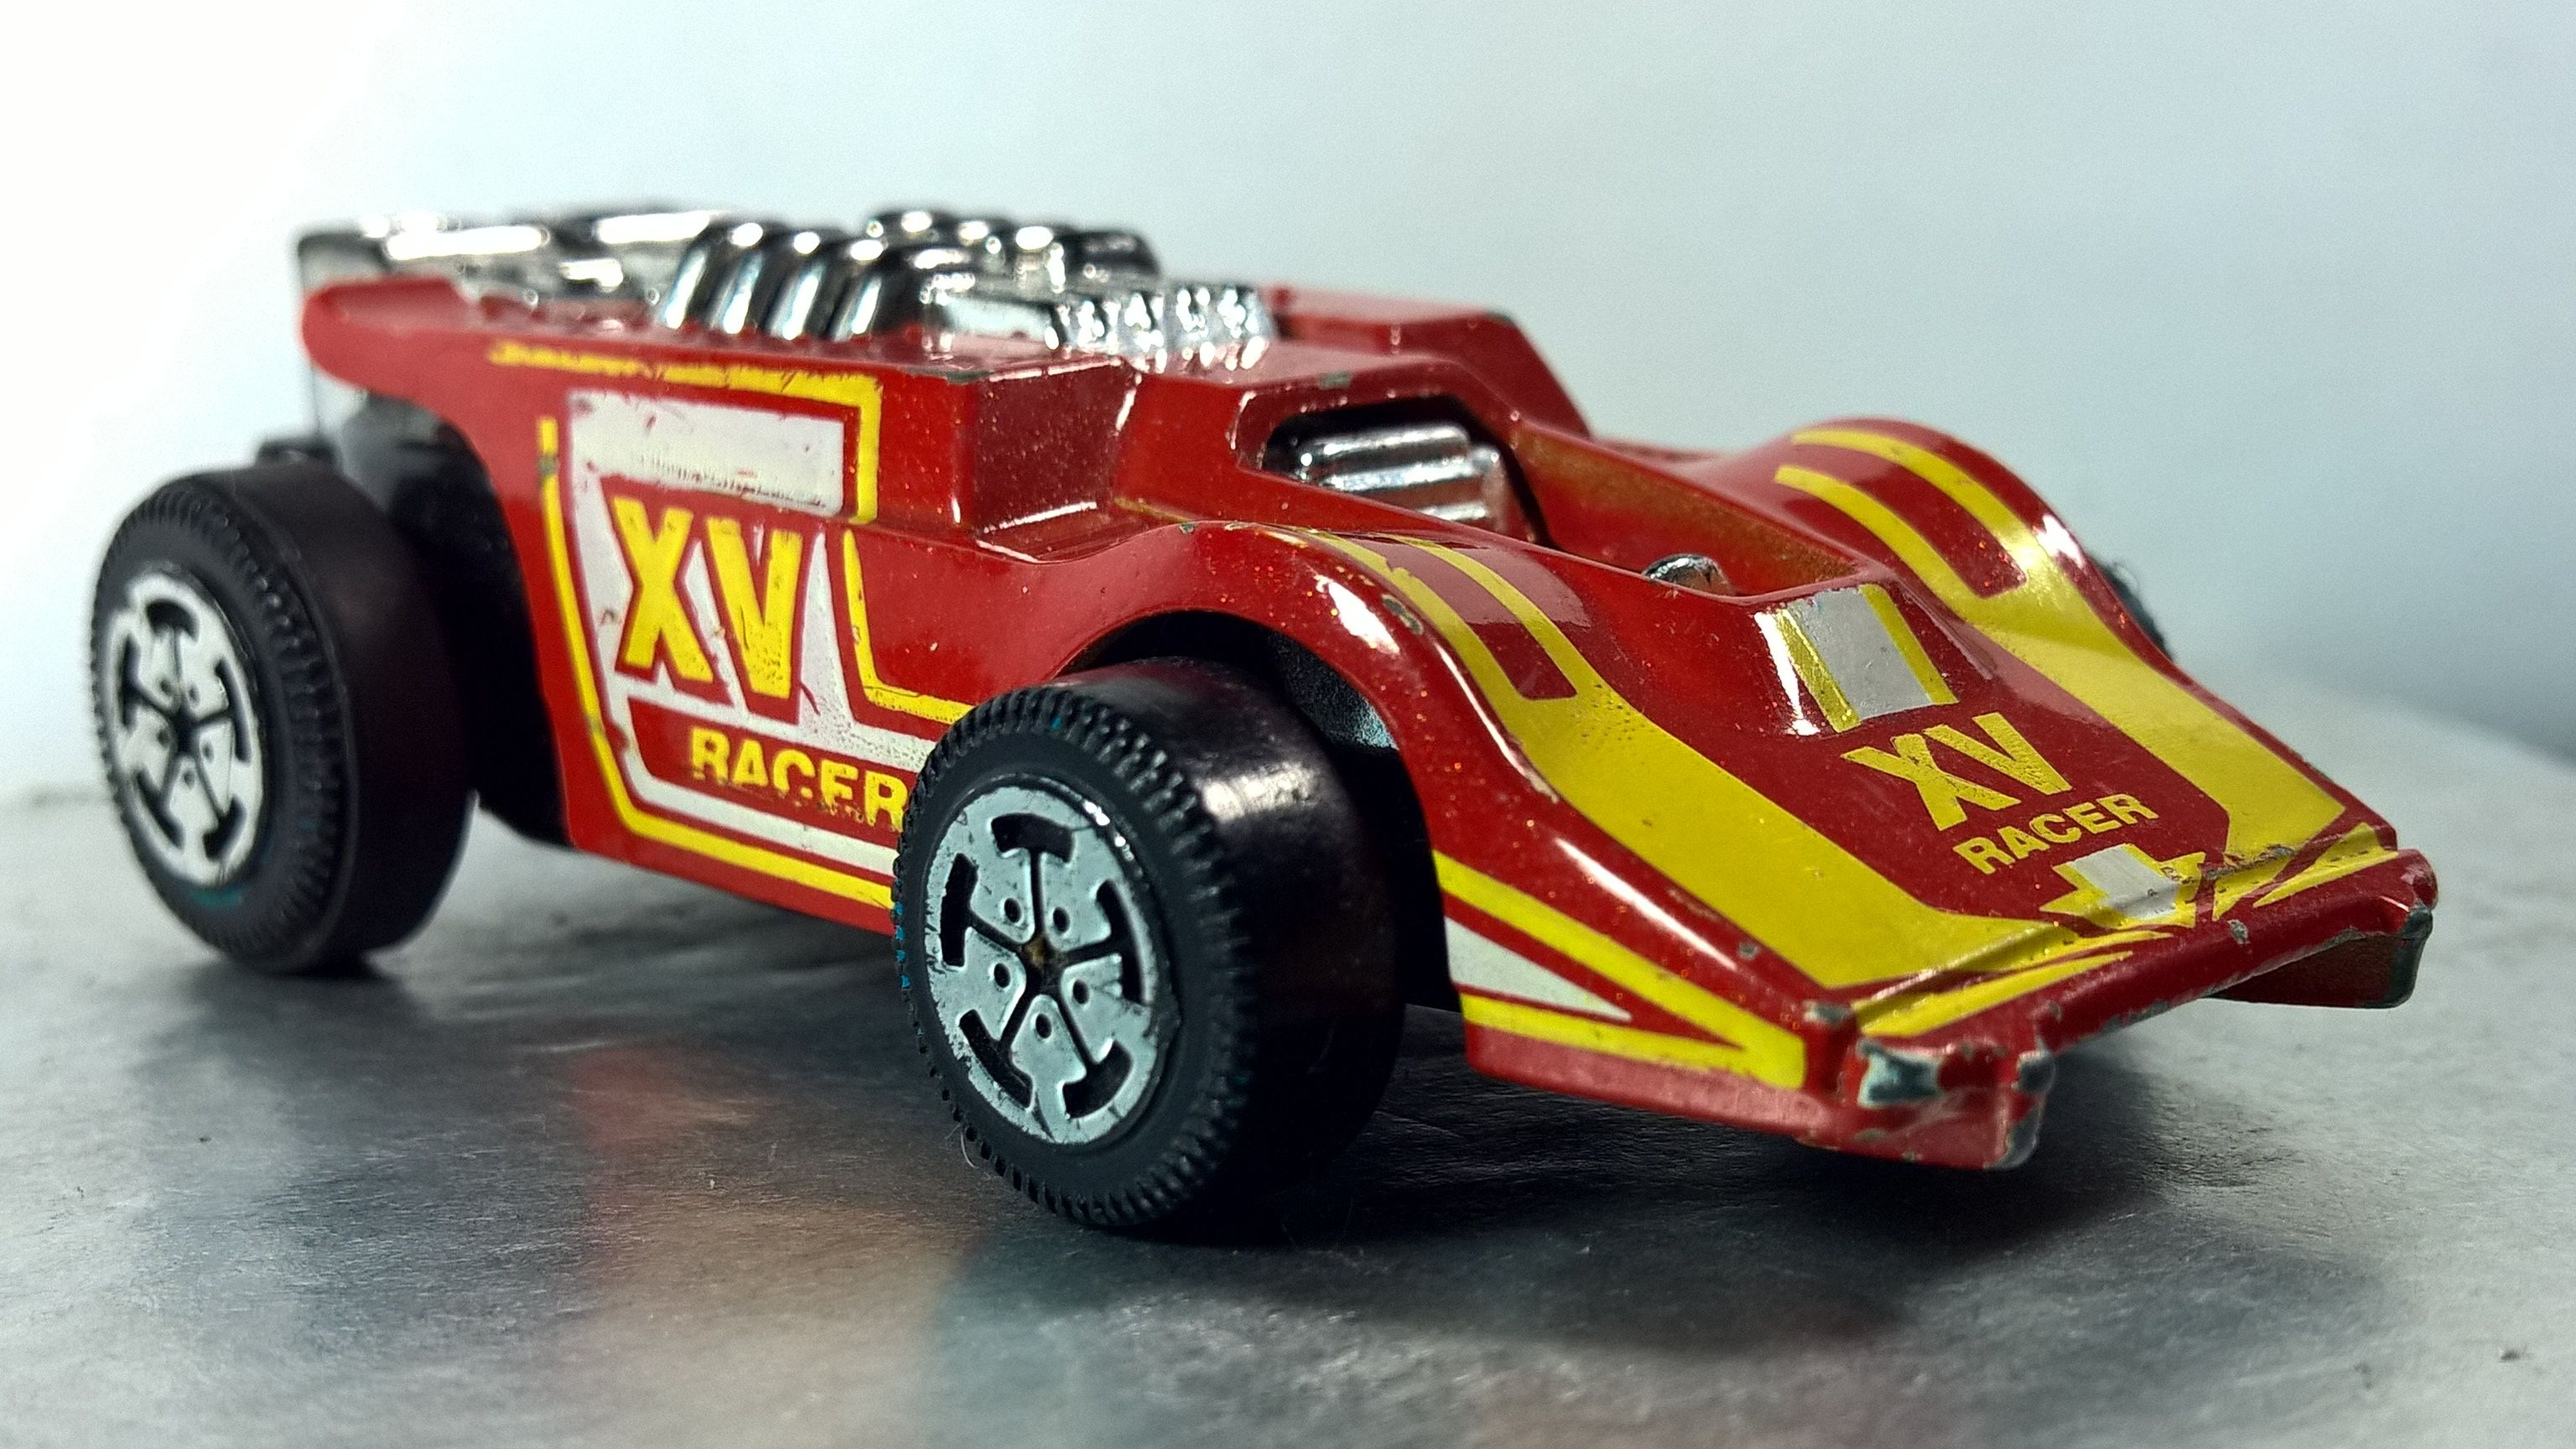 XV RACERS 1985 17 (With images) Diecast cars, Hot